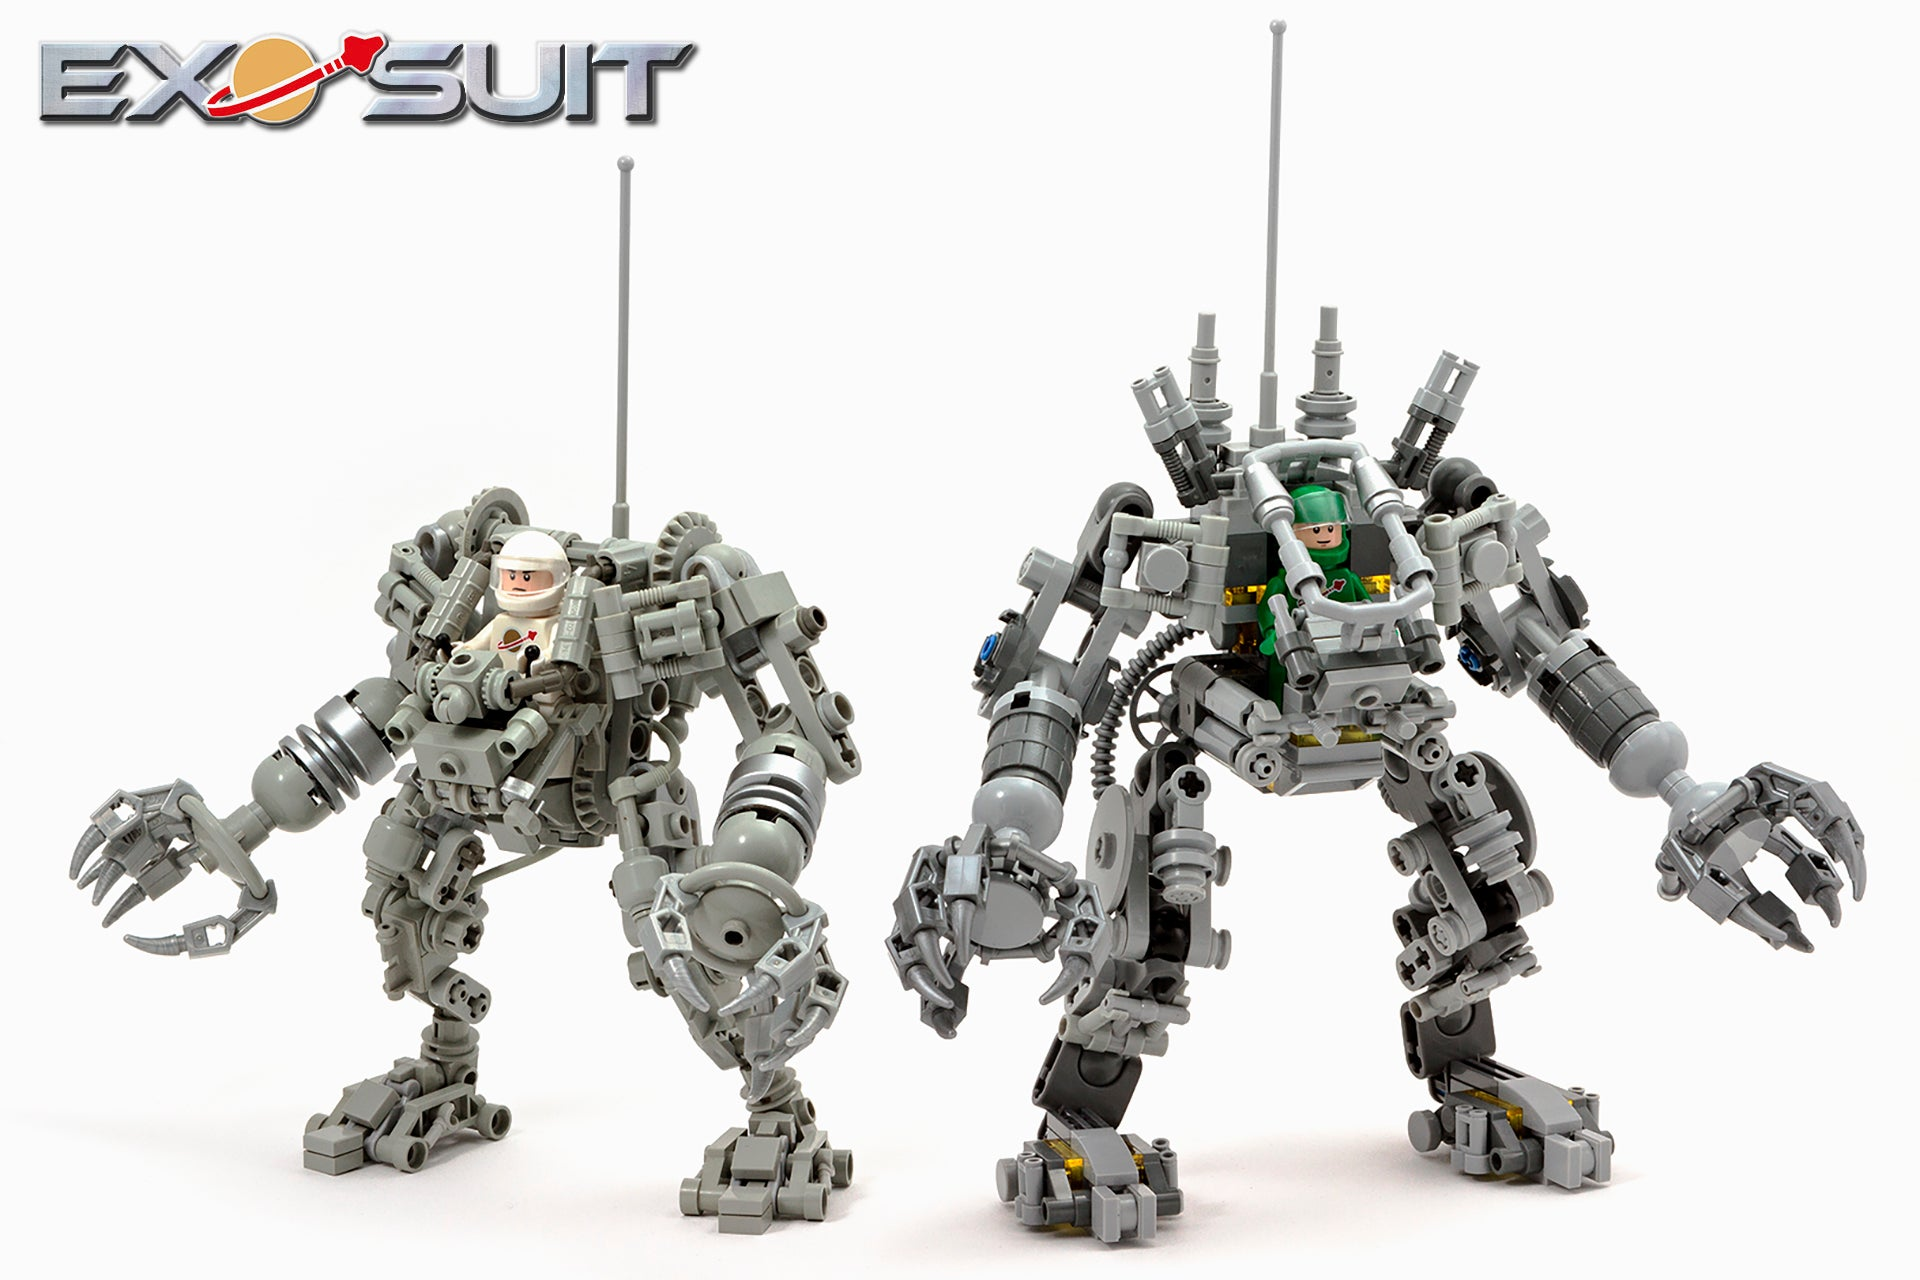 The Exo Suit Ushers In A New Age Of LEGO Space Exploration